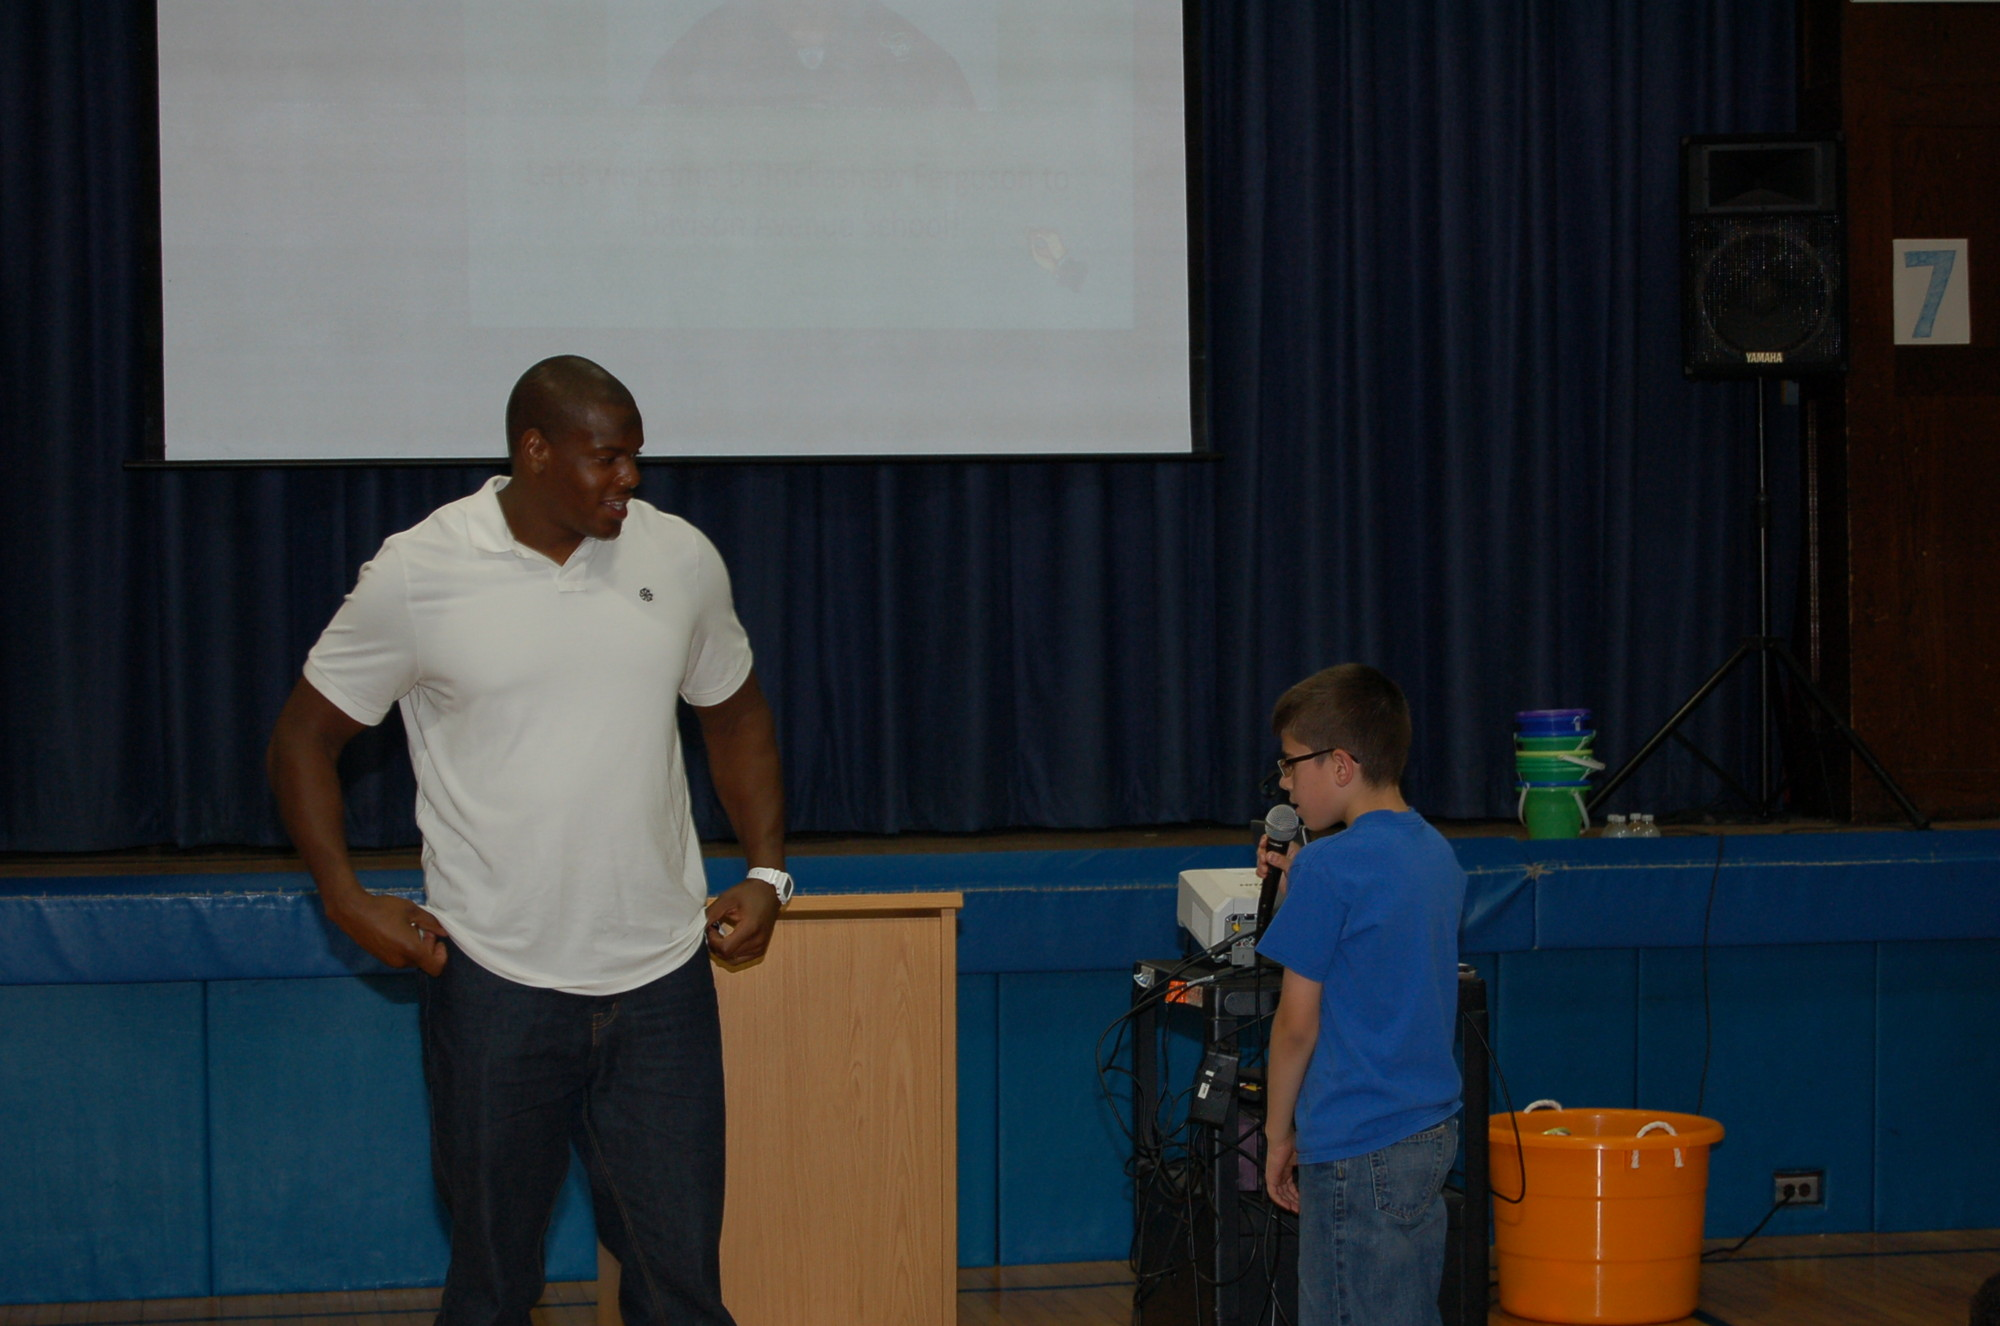 A Malverne middle school students asks the football player a question.